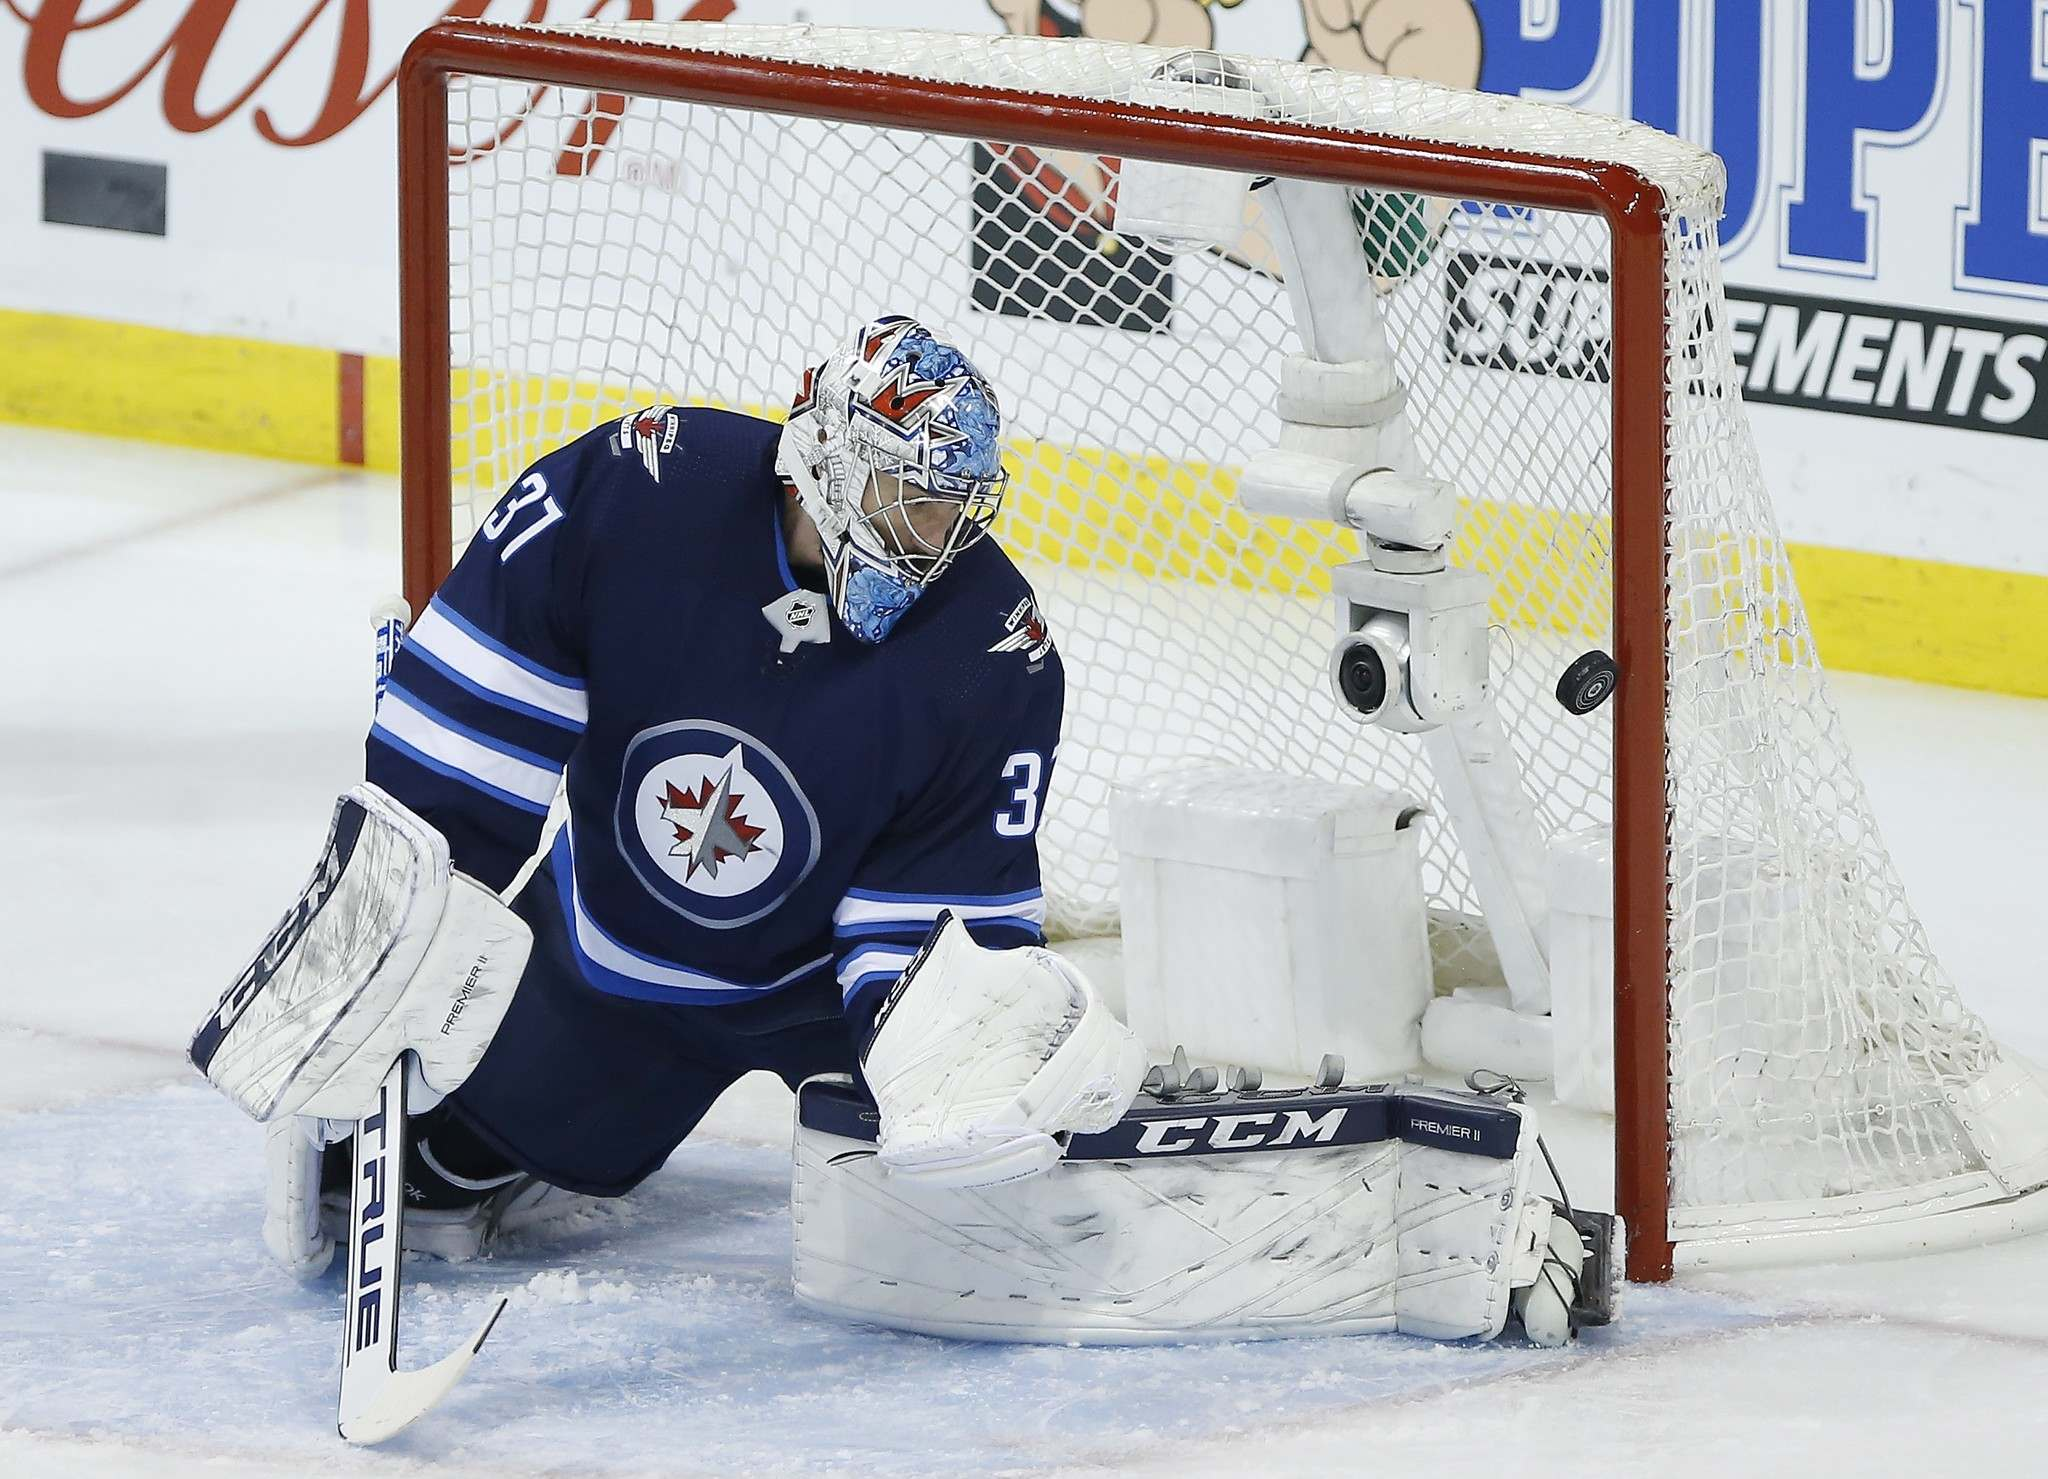 """John Woods</p> <p>/ The Canadian Press</p> <p>Winnipeg Jets goaltender Connor Hellebuyck (37) watches as a Montreal Canadiens' shot goes off the post during first period NHL action in Winnipeg on Saturday, March 28, 2019.</p> <p>""""></a><figcaption readability="""